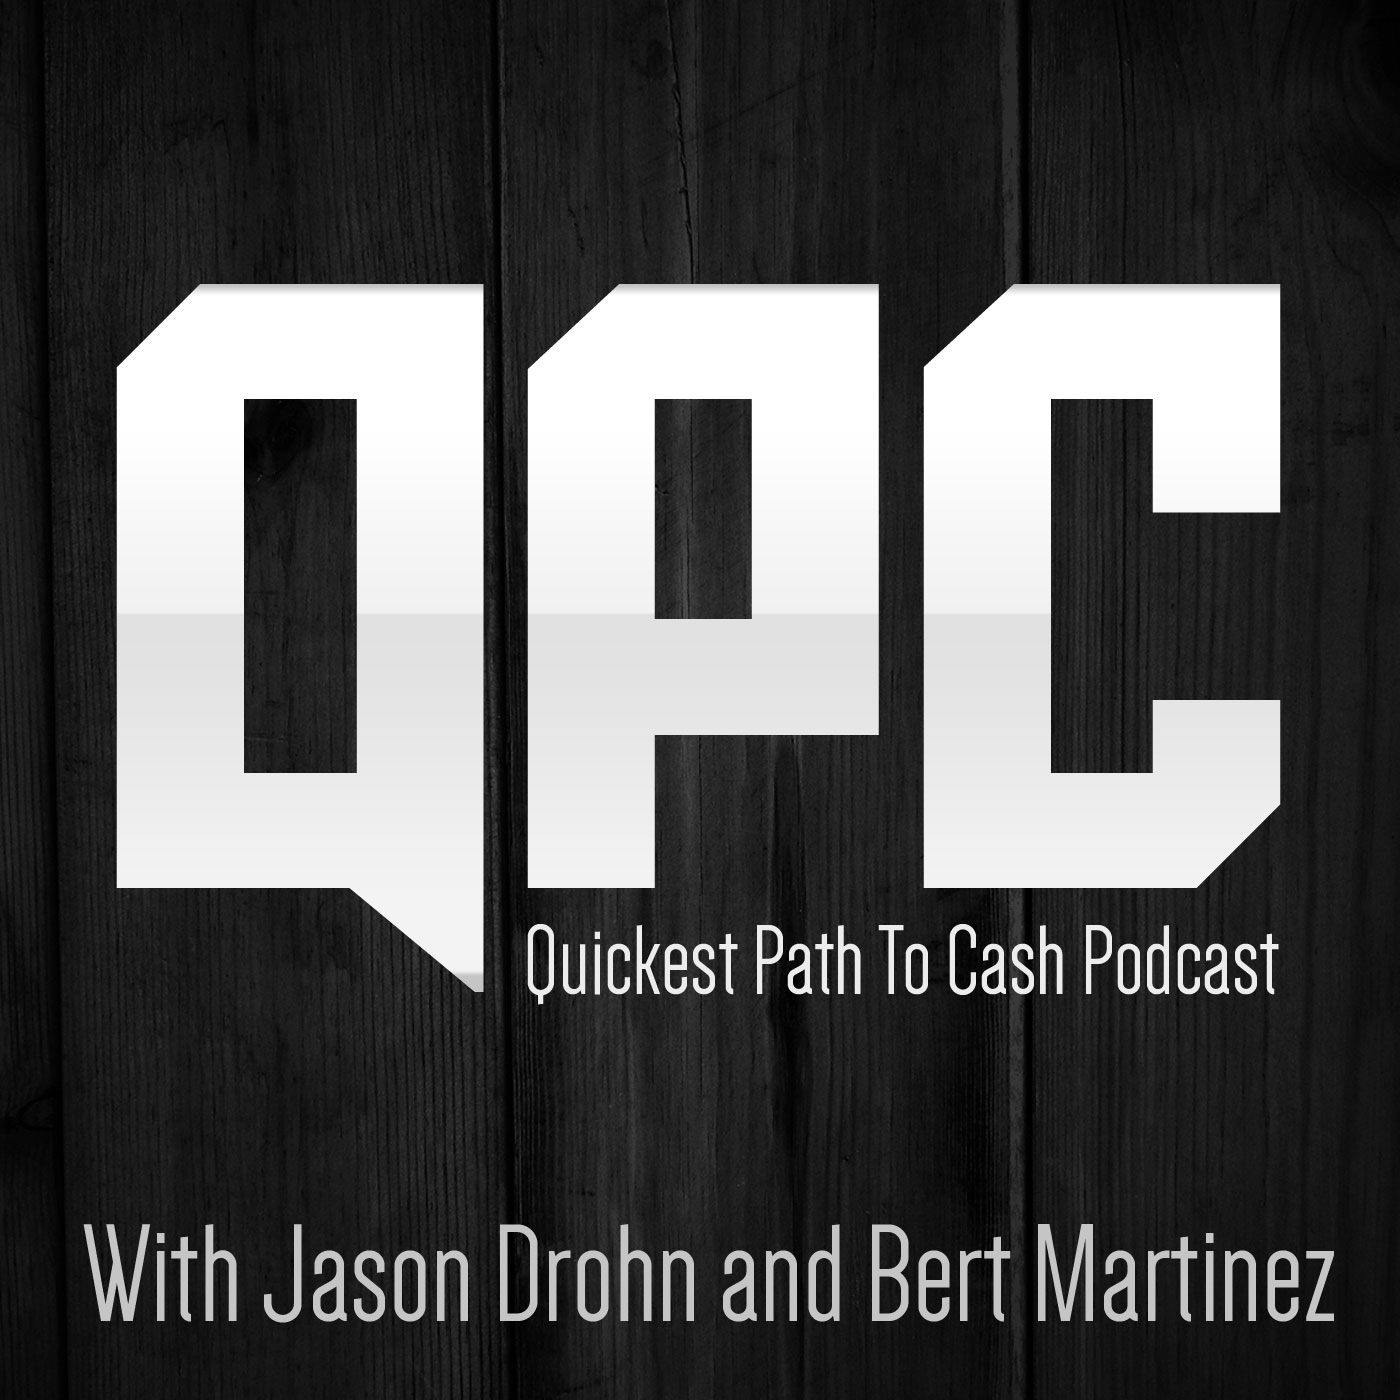 Quickest Path To Cash Podcast